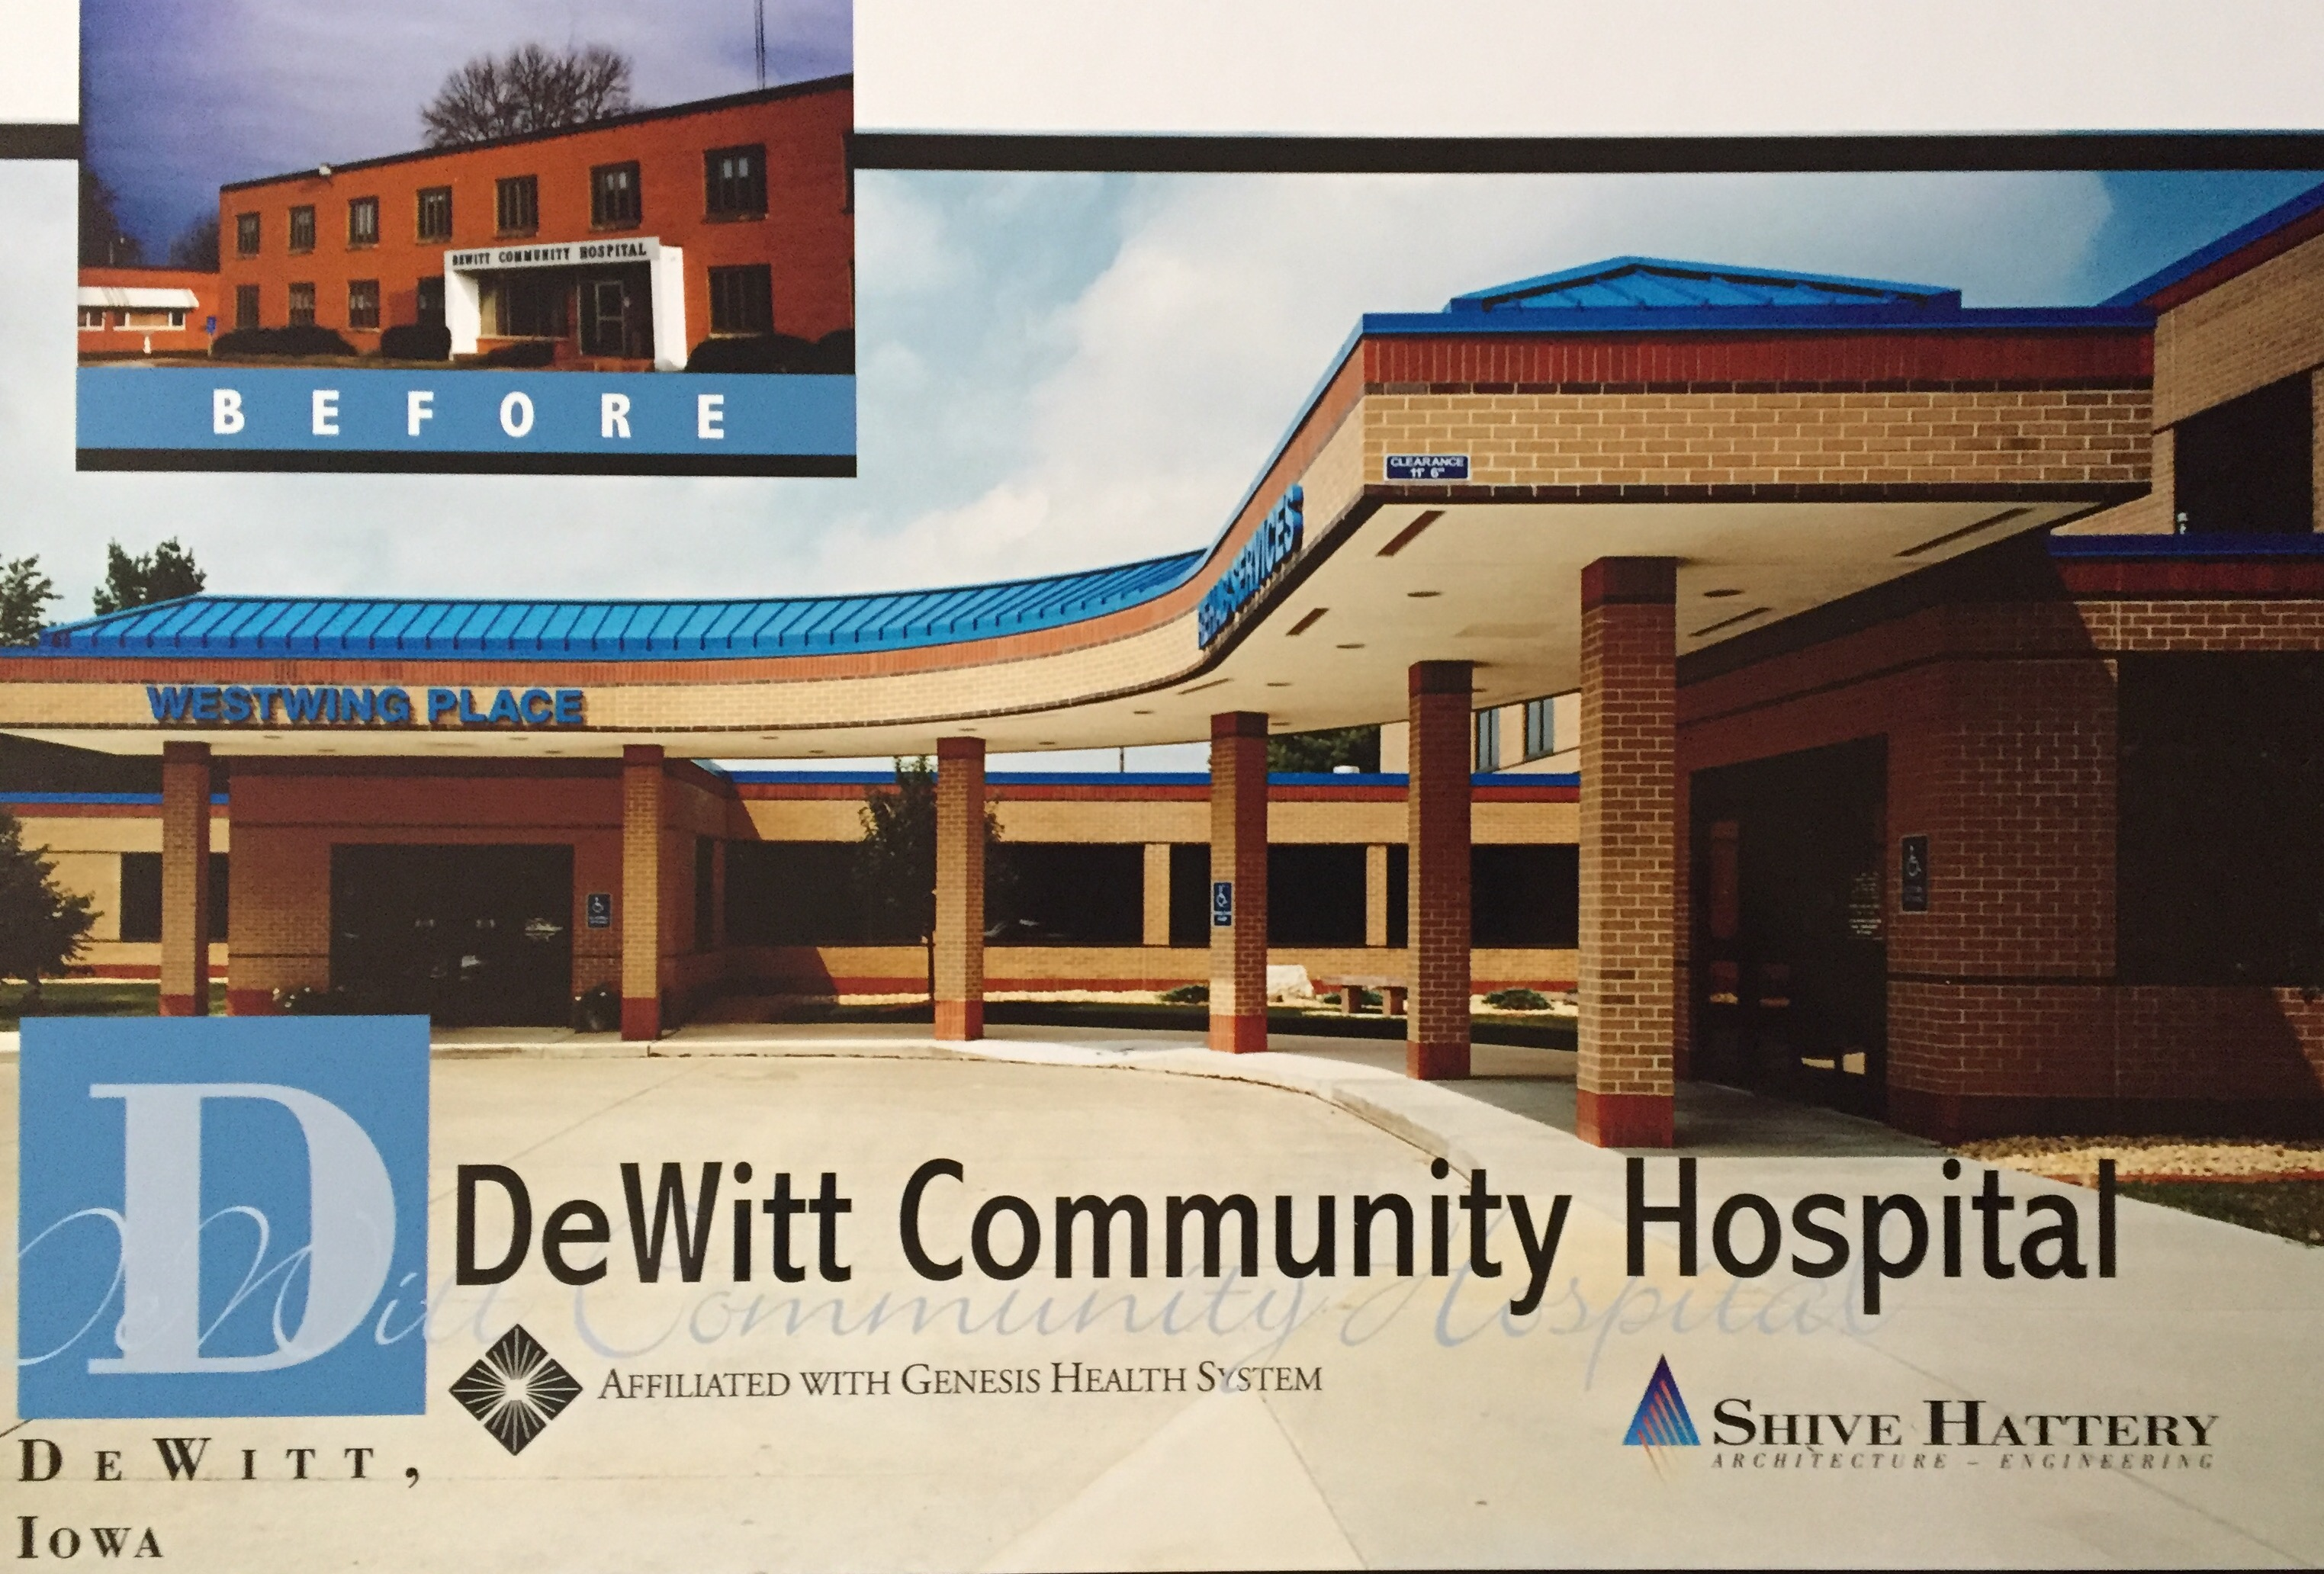 Major renovations take place at DeWitt Community Hospital.